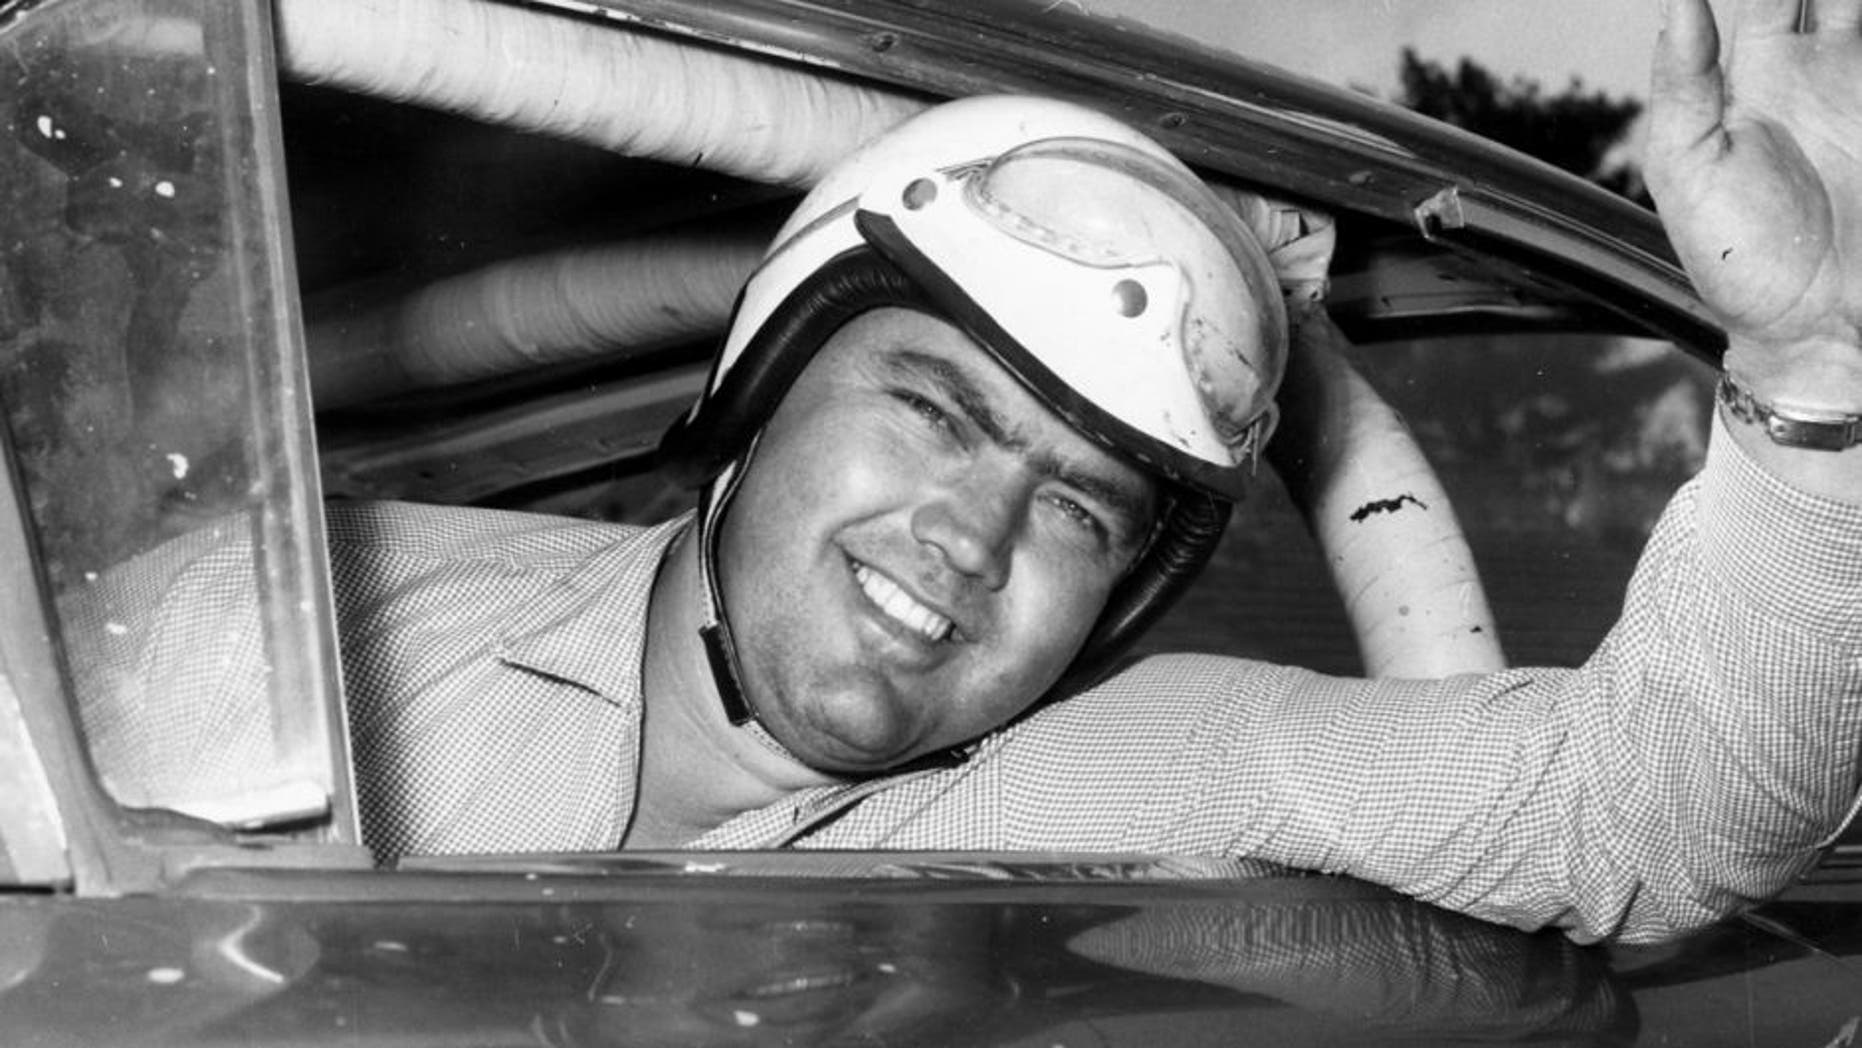 1959: Junior Johnson looks out his car window before a race. Johnson racked up 50 wins during his NASCAR Cup Series driving career, being named one of the organization's 50 Greatest Drivers. (Photo by: RacingOne/Getty Images) *** Local Caption *** Junior Johnson